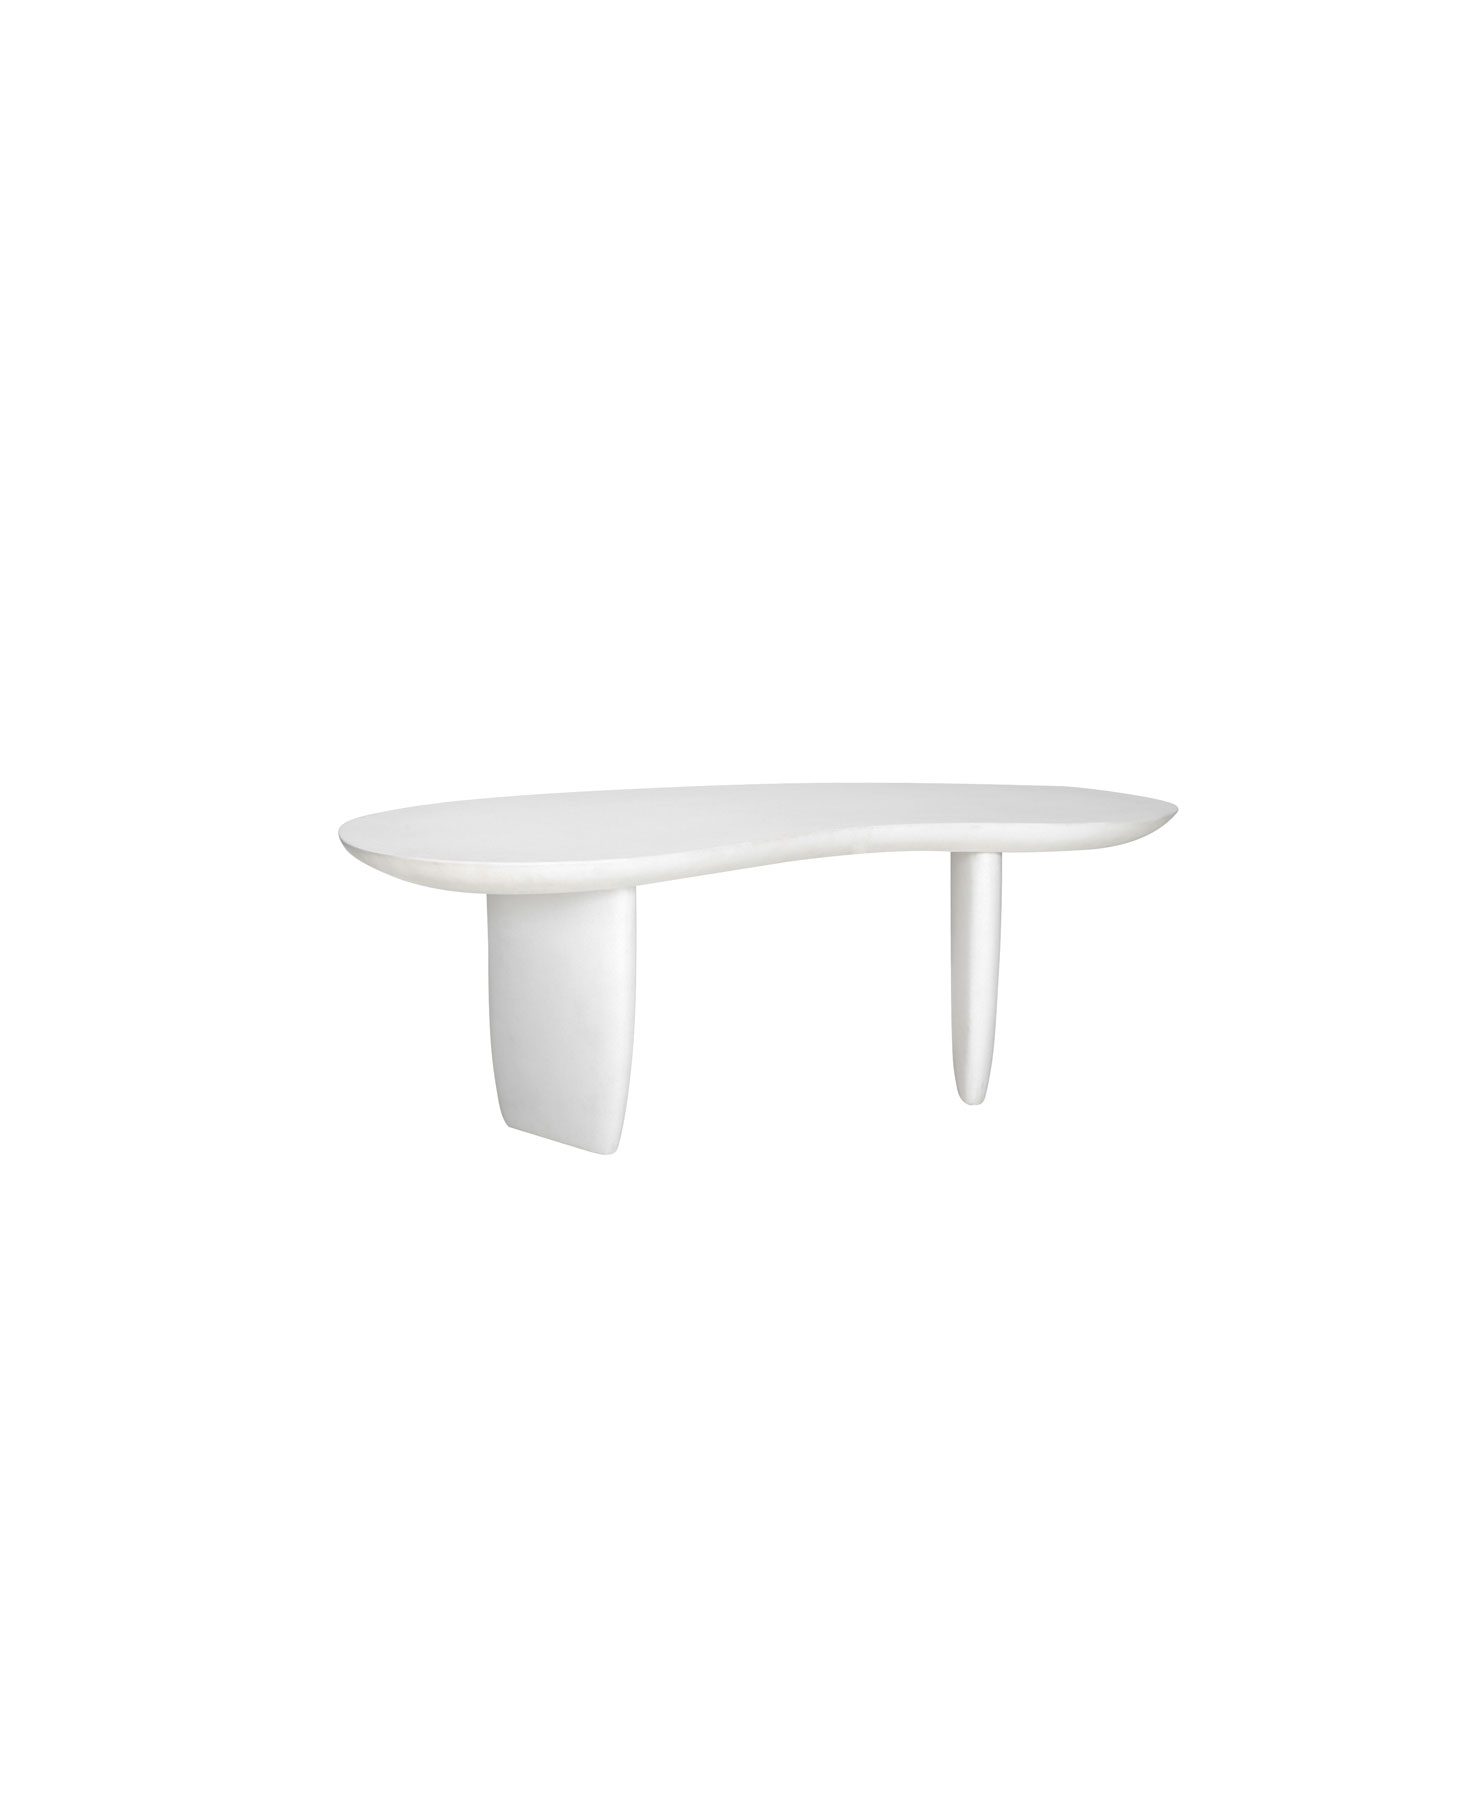 goop x CB2 collection - Jelly Bean Coffee Table